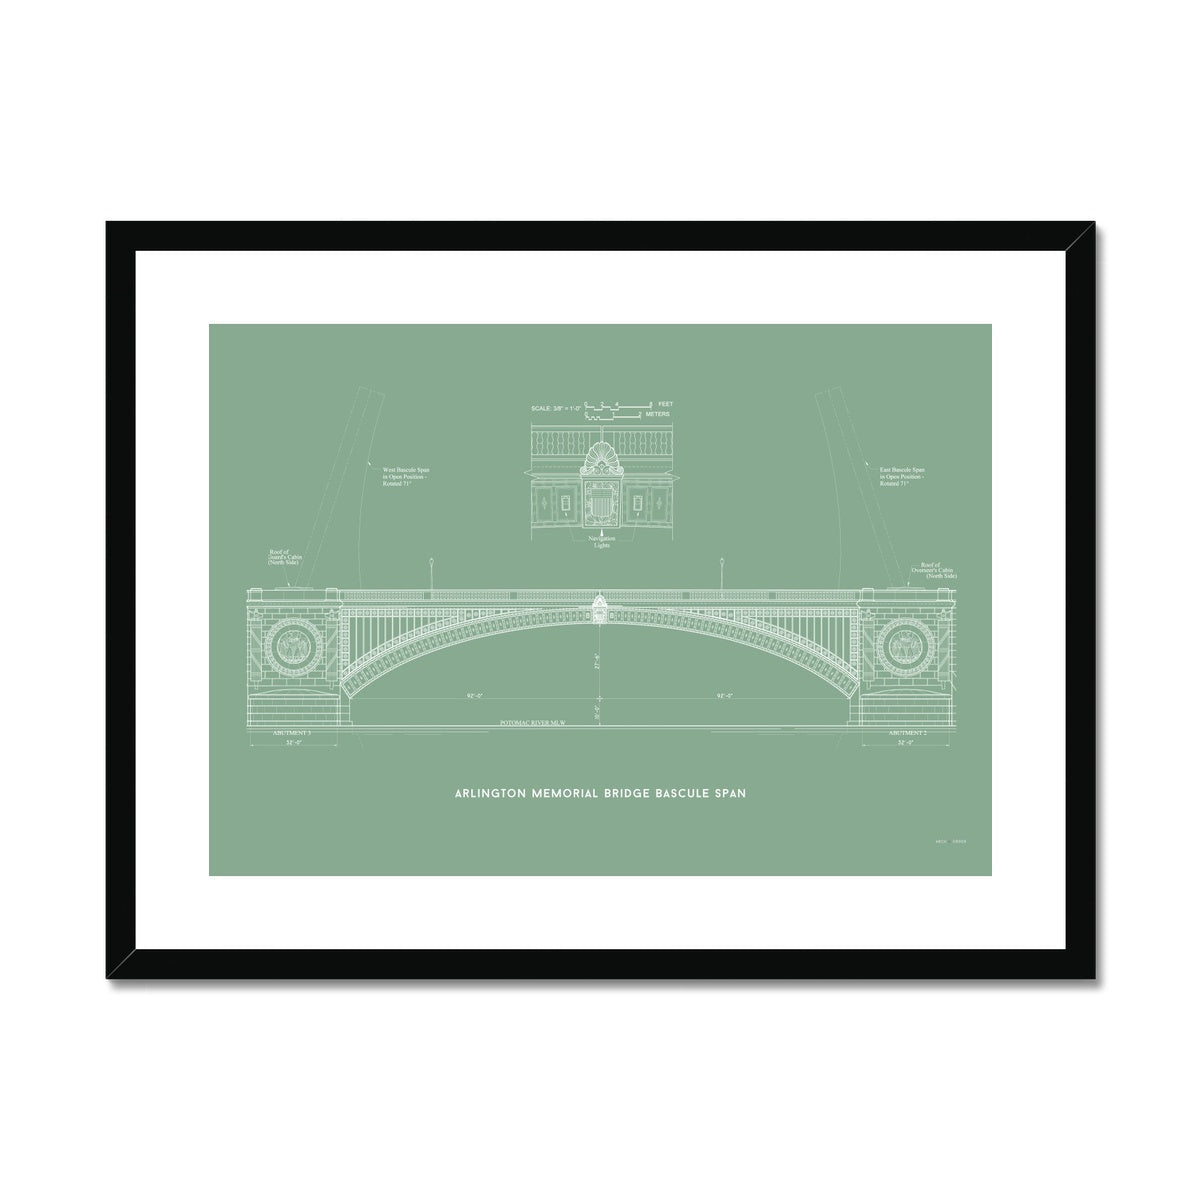 The Arlington Memorial Bridge - Bascule Span - Green -  Framed & Mounted Print